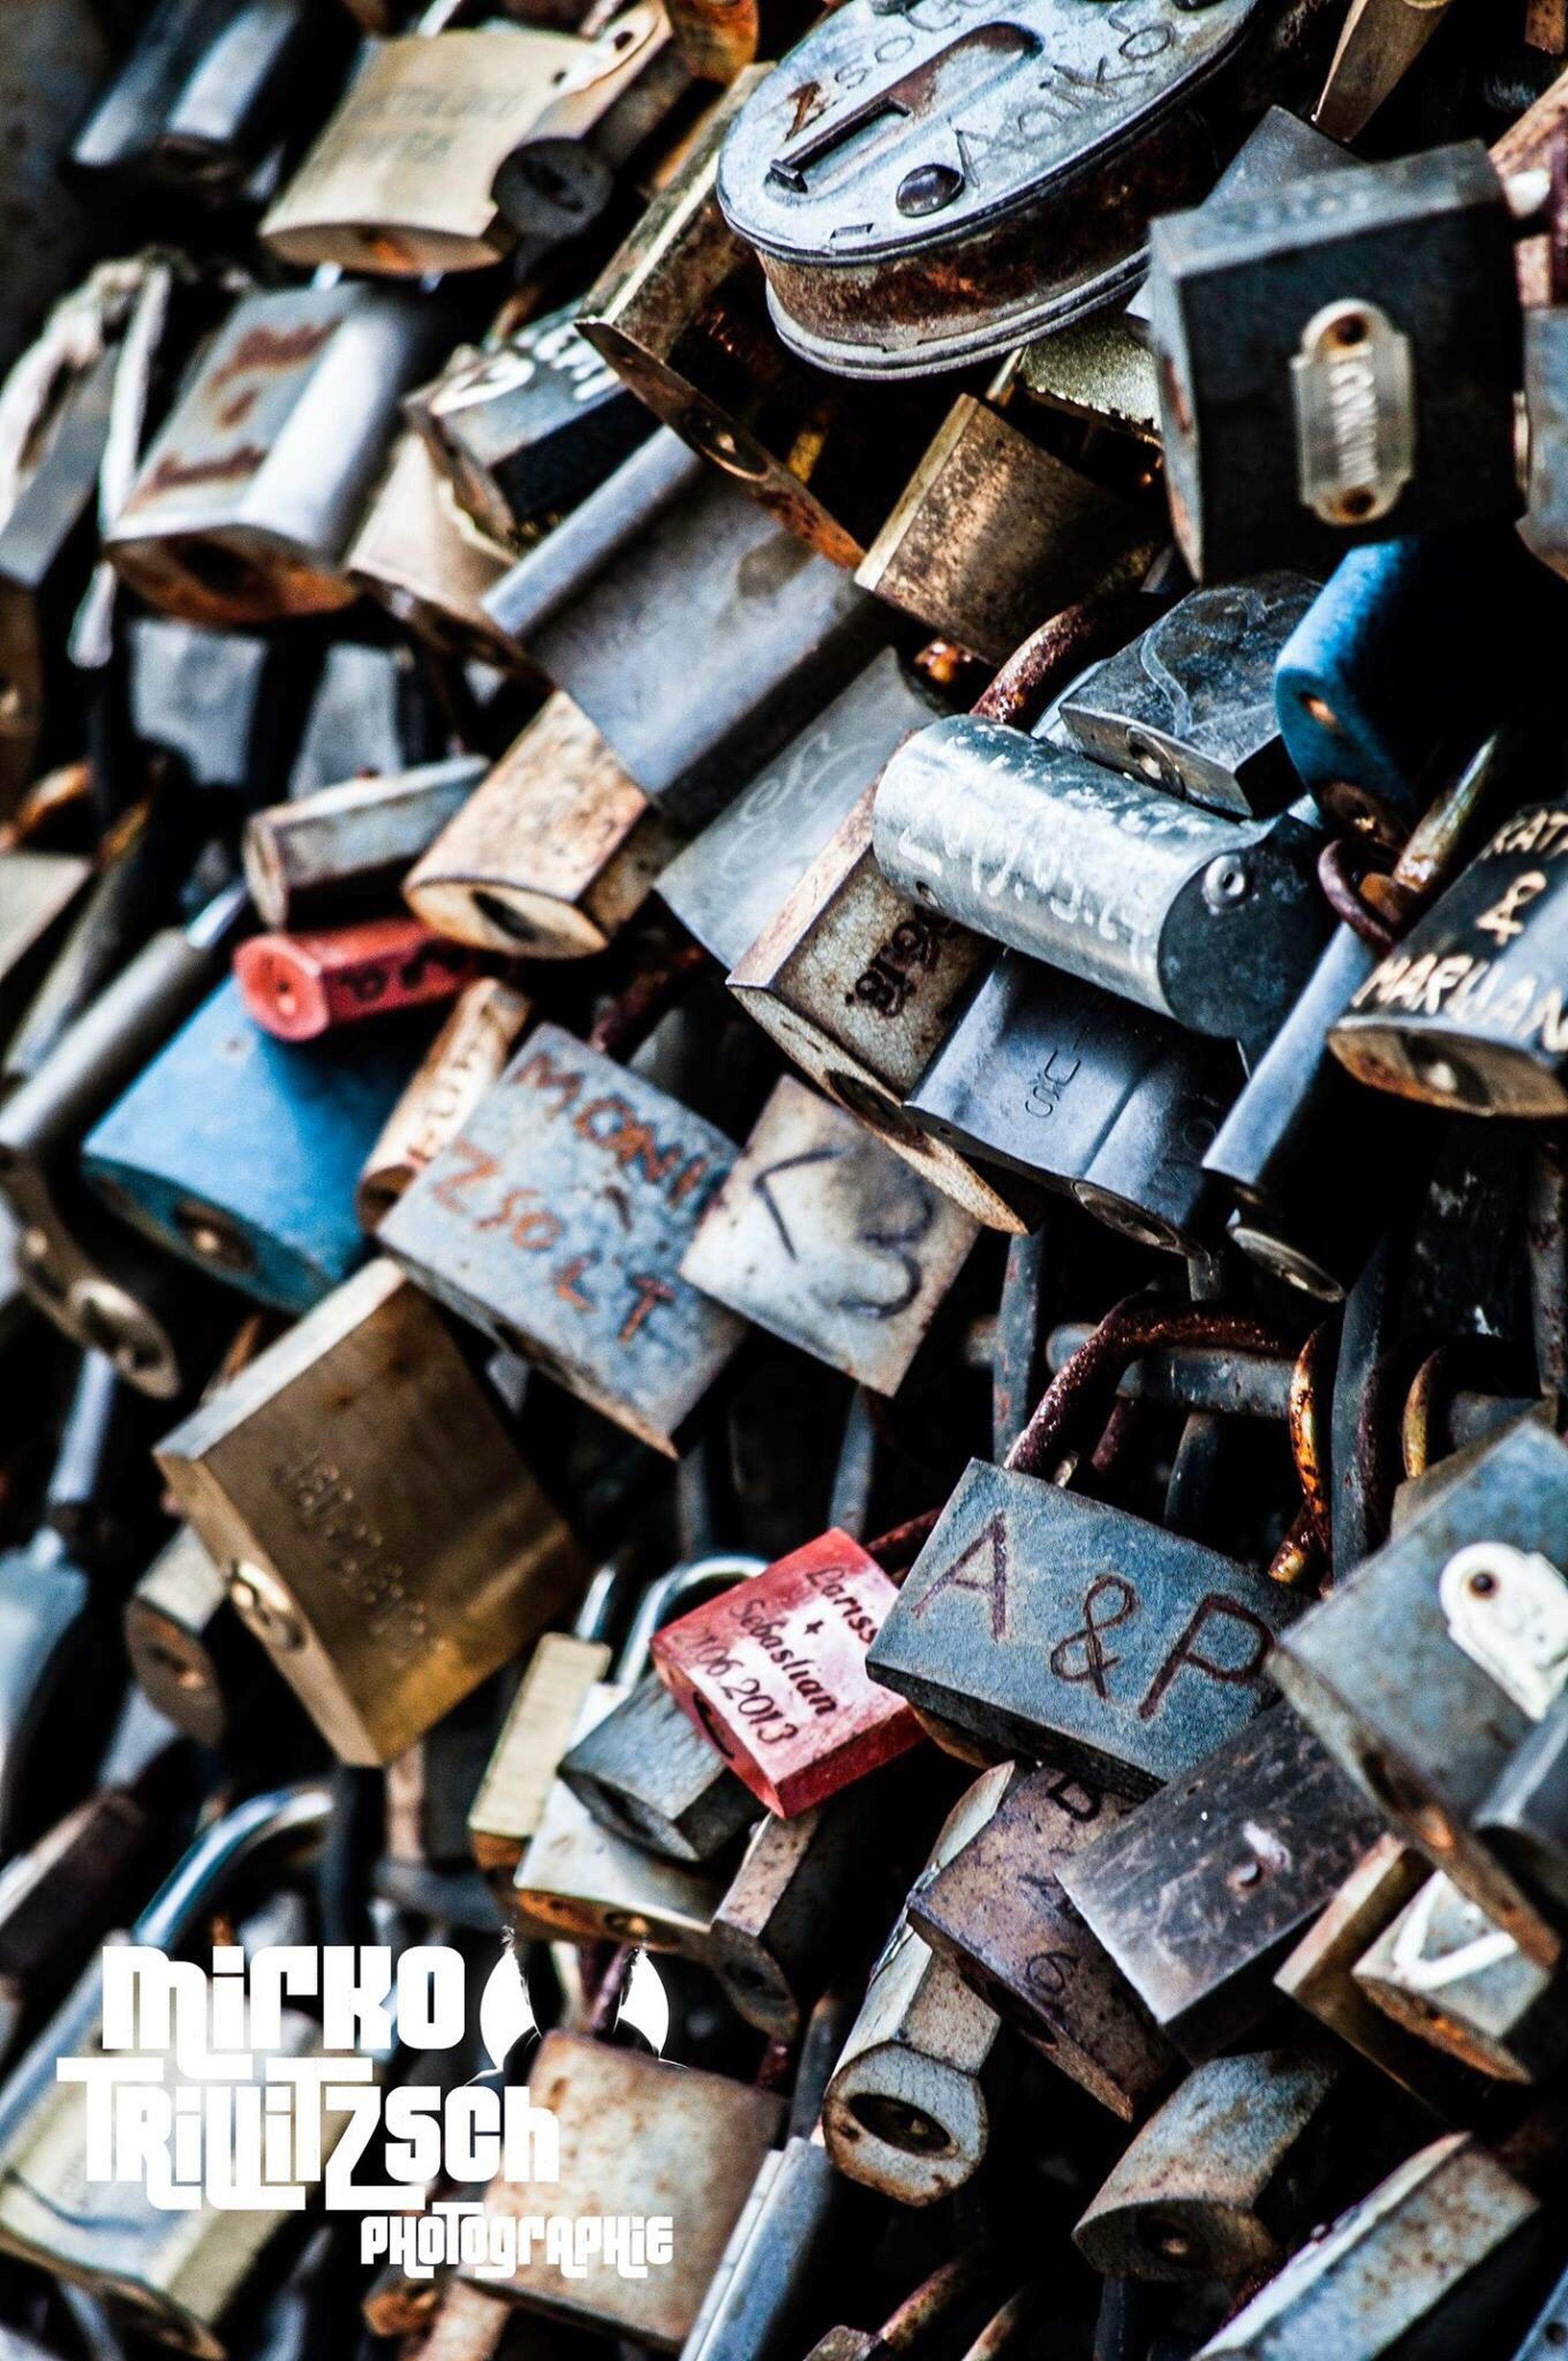 abundance, metal, large group of objects, full frame, close-up, lock, backgrounds, no people, heap, outdoors, day